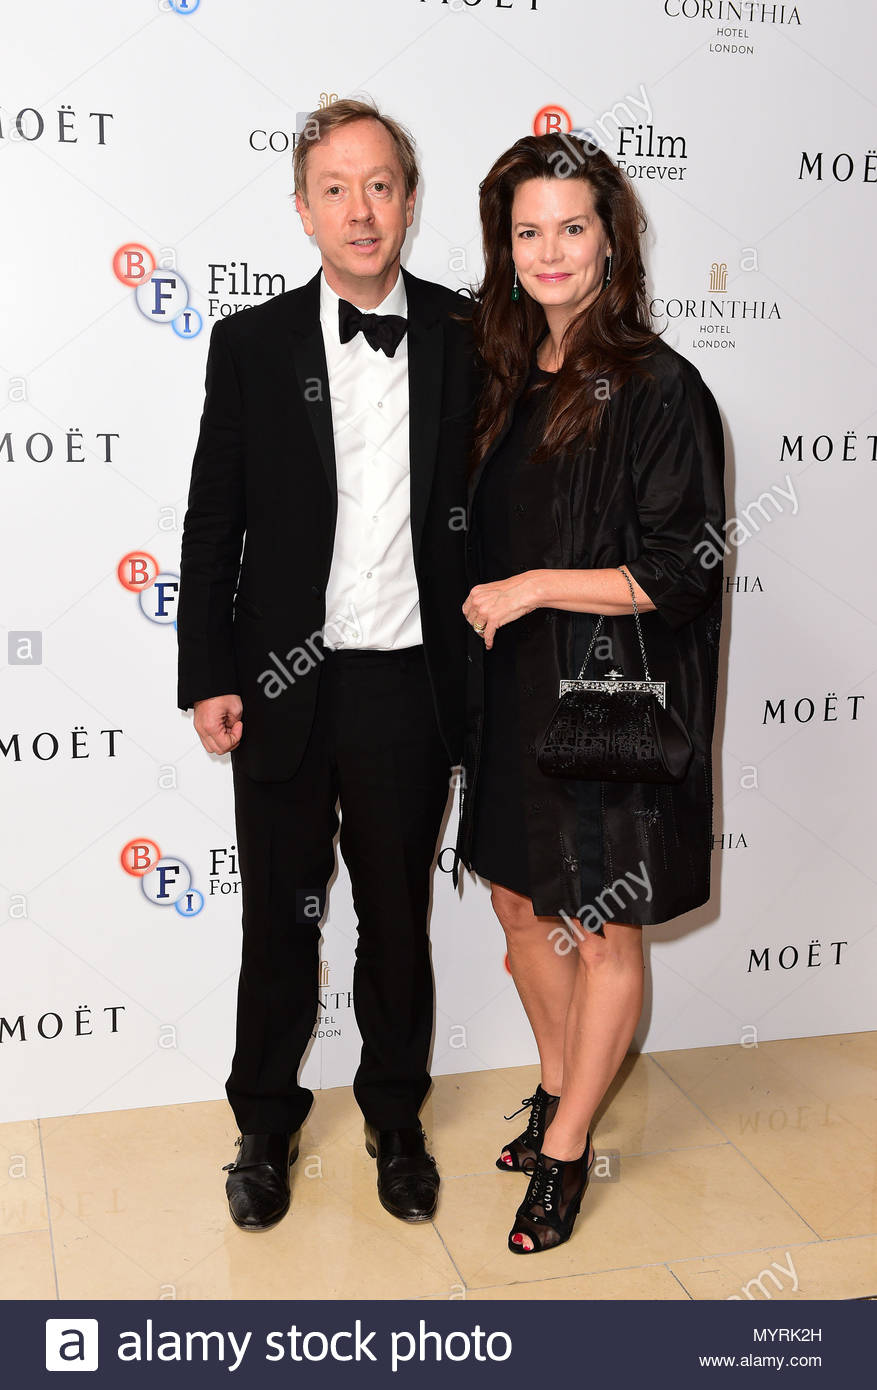 File photo dated 24/9/2014 of Geordie Greig and Kathryn Greig attending the Al Pacino BFI Fellowship dinner, supported by Moet & Chandon, at the Corinthia Hotel, London. Greig's appointment as Daily Mail editor follows the announcement on Wednesday that Paul Dacre is to become chairman and editor in chief of Associated Newspapers. - Stock Image